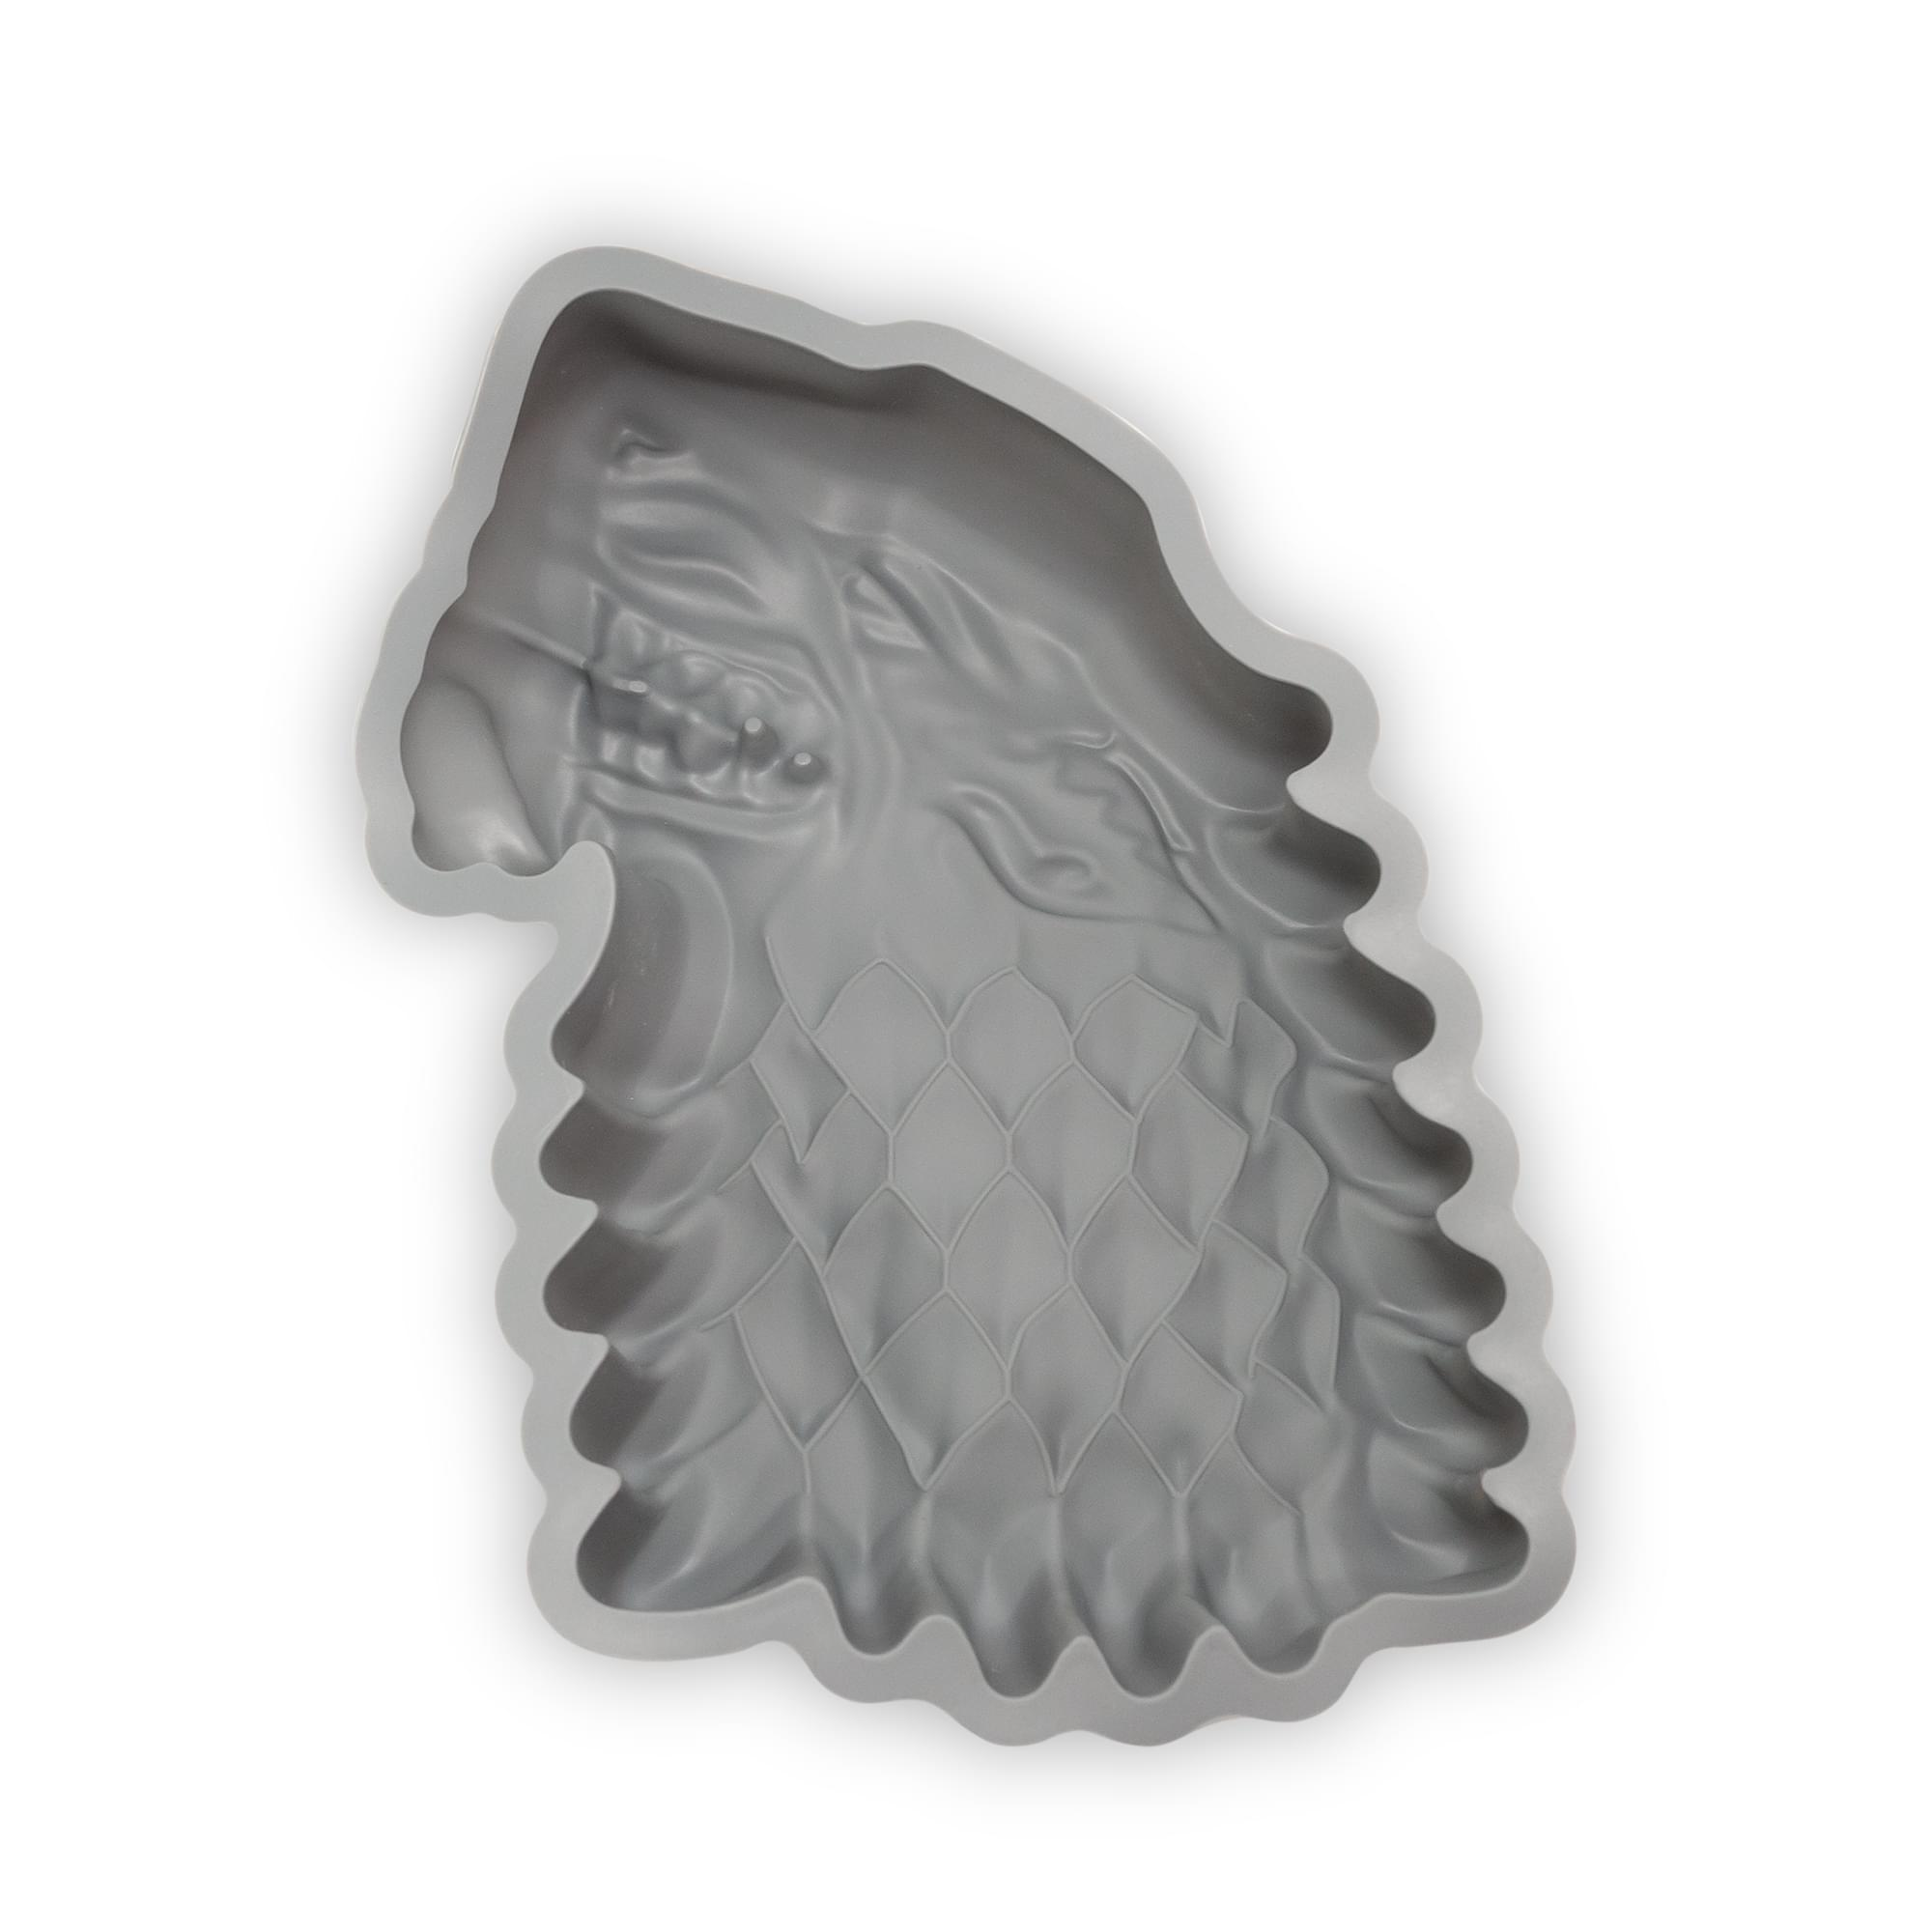 Game Of Thrones Silicone Cake Pan | Official House Stark Dire Wolf Cake Mold